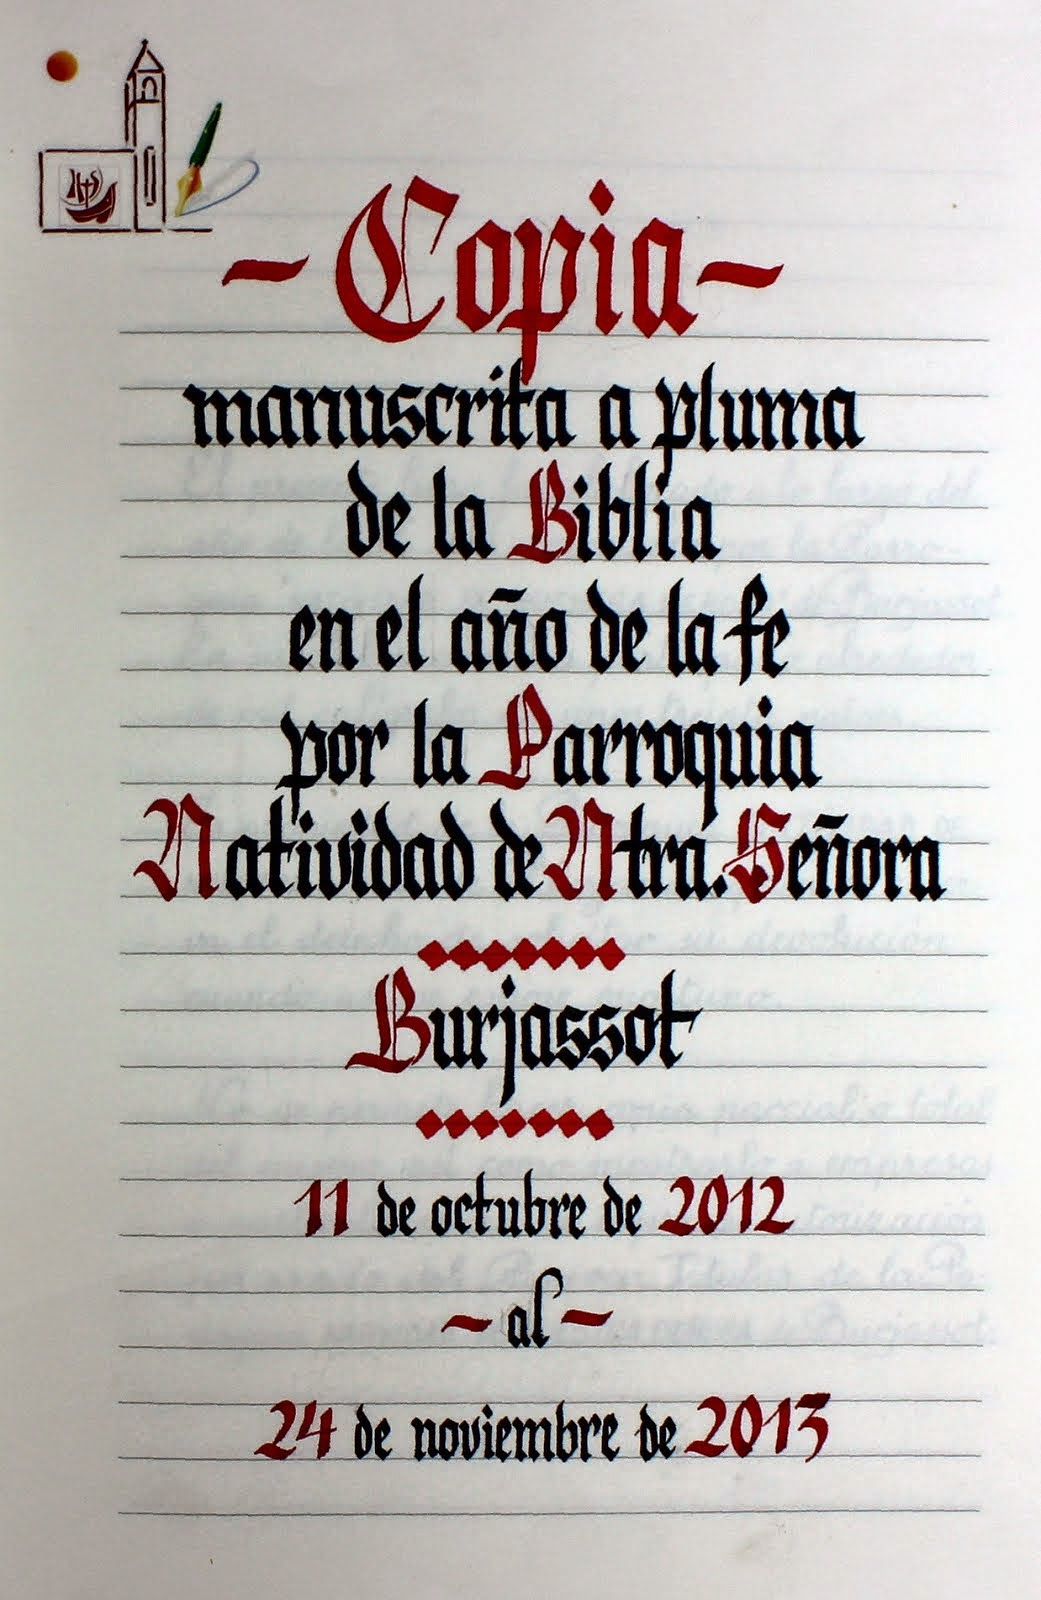 Copia Manuscrita de la Biblia